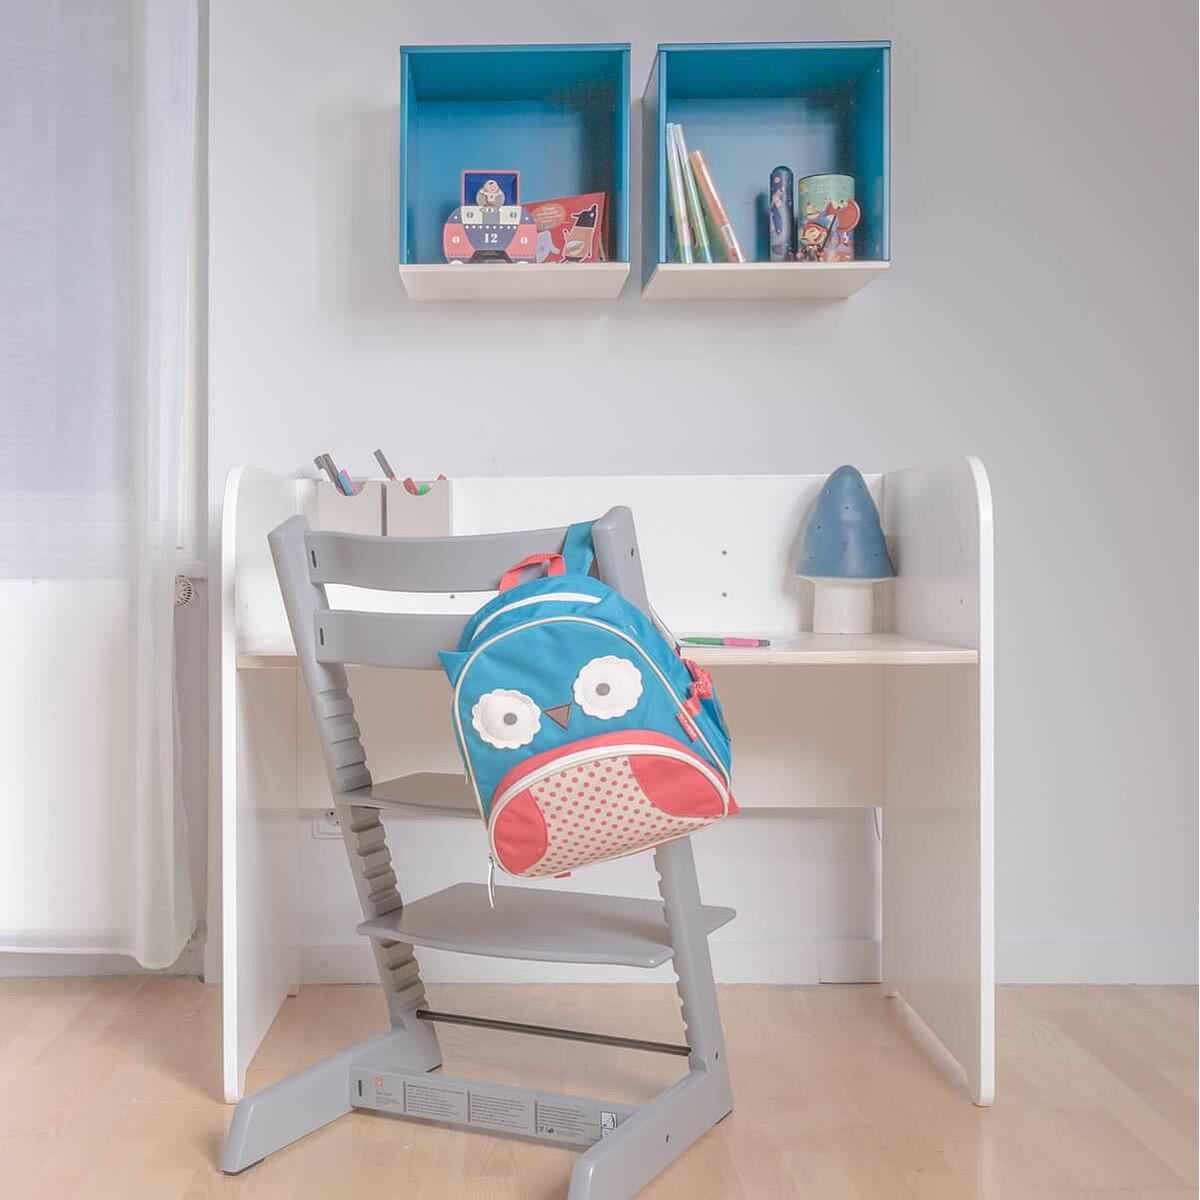 Cube mural COLORFLEX Abitare Kids space grey